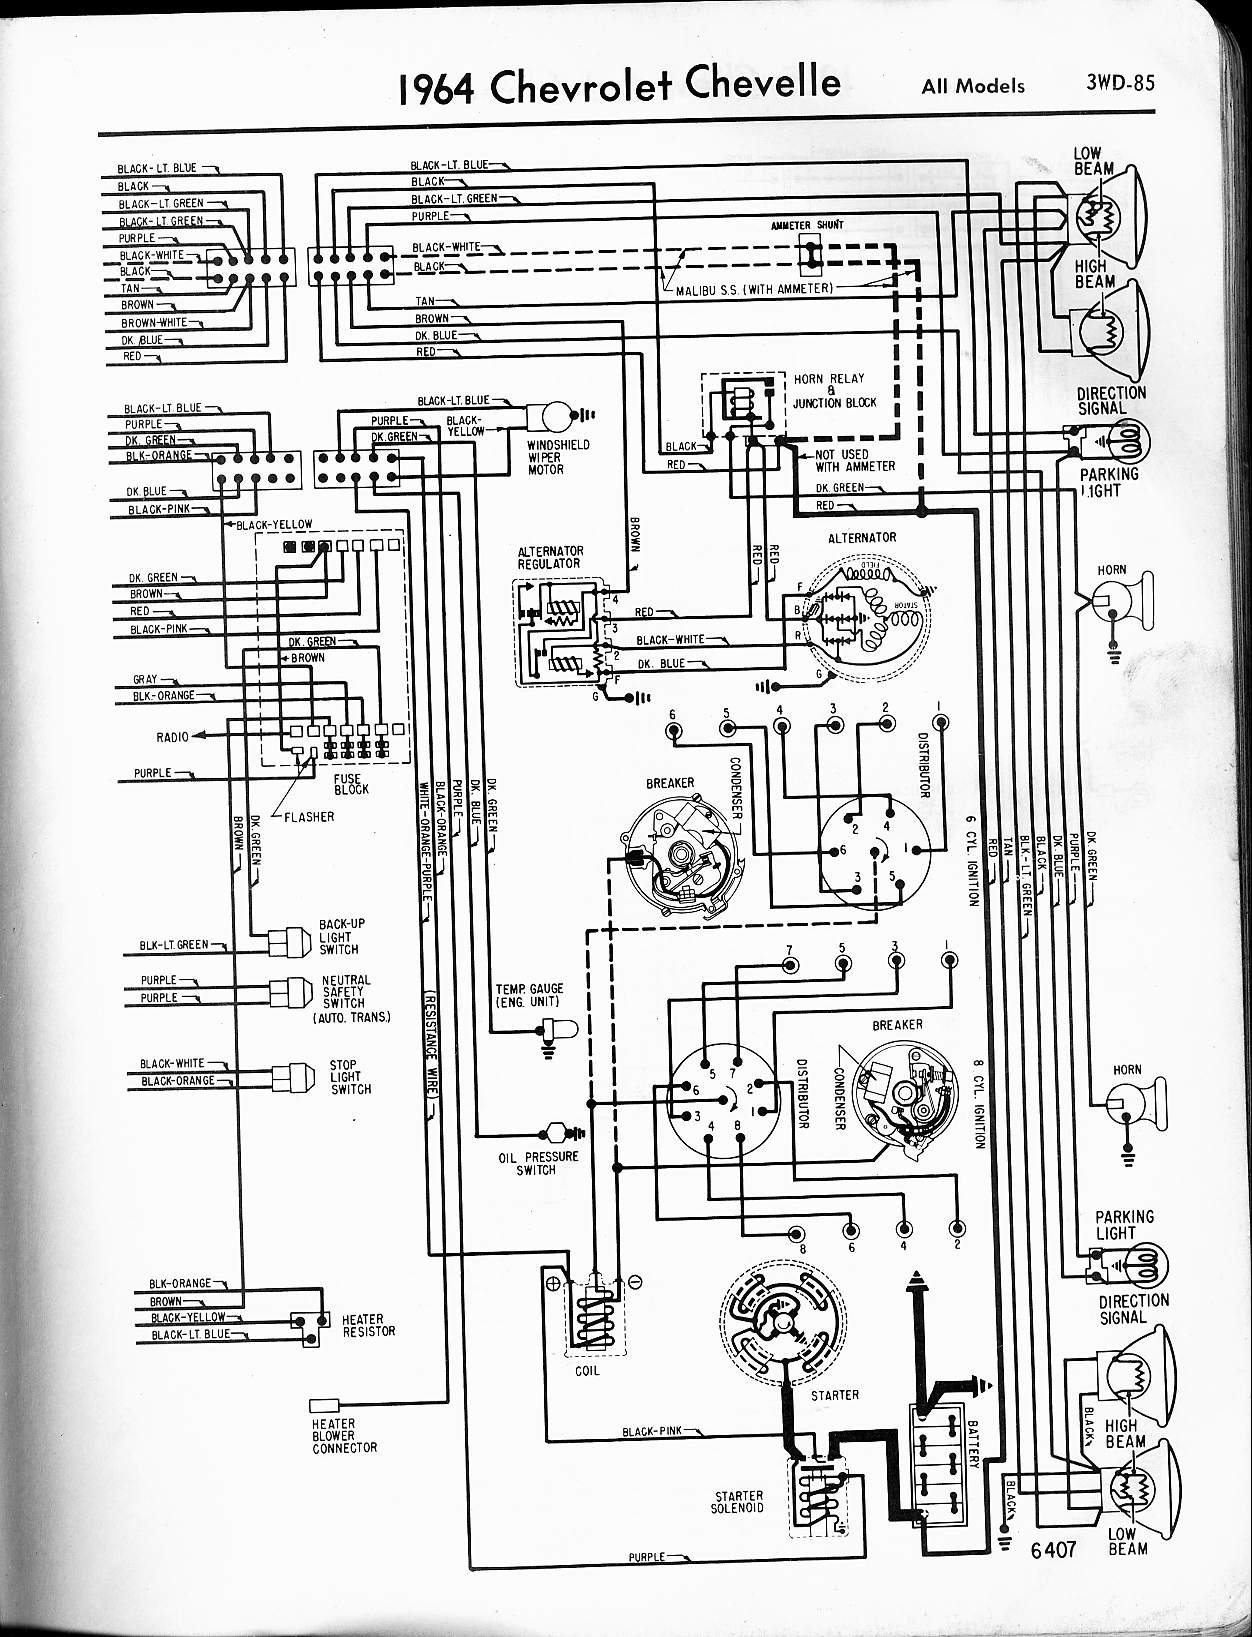 MWireChev64_3WD 085 1969 chevelle wiring diagram pdf 1969 thunderbird dash wiring Turn Signal Relay Wiring Diagram at readyjetset.co